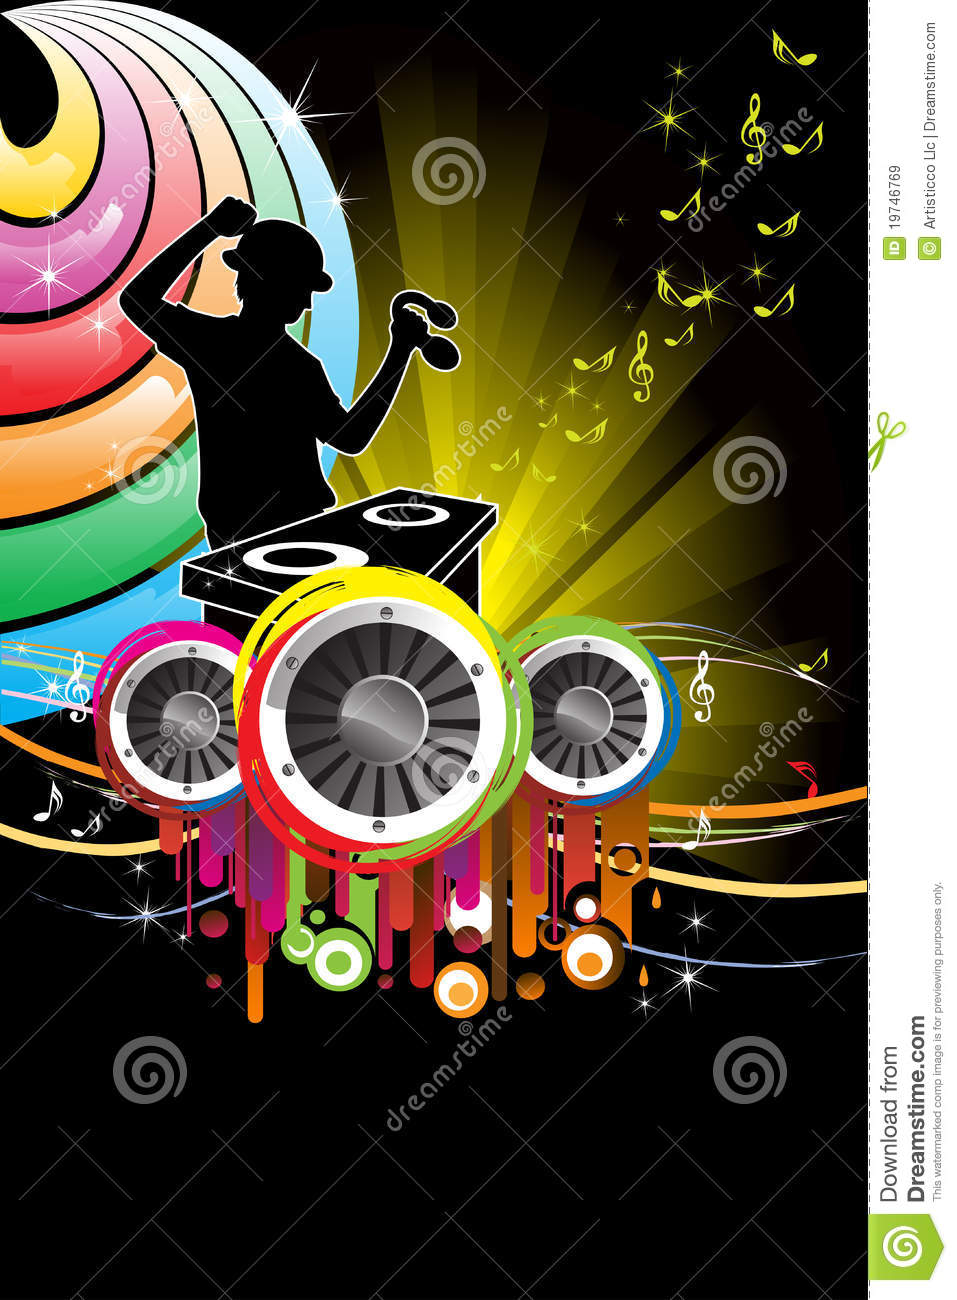 DJ Music Royalty Free Stock Images - Image: 19746769